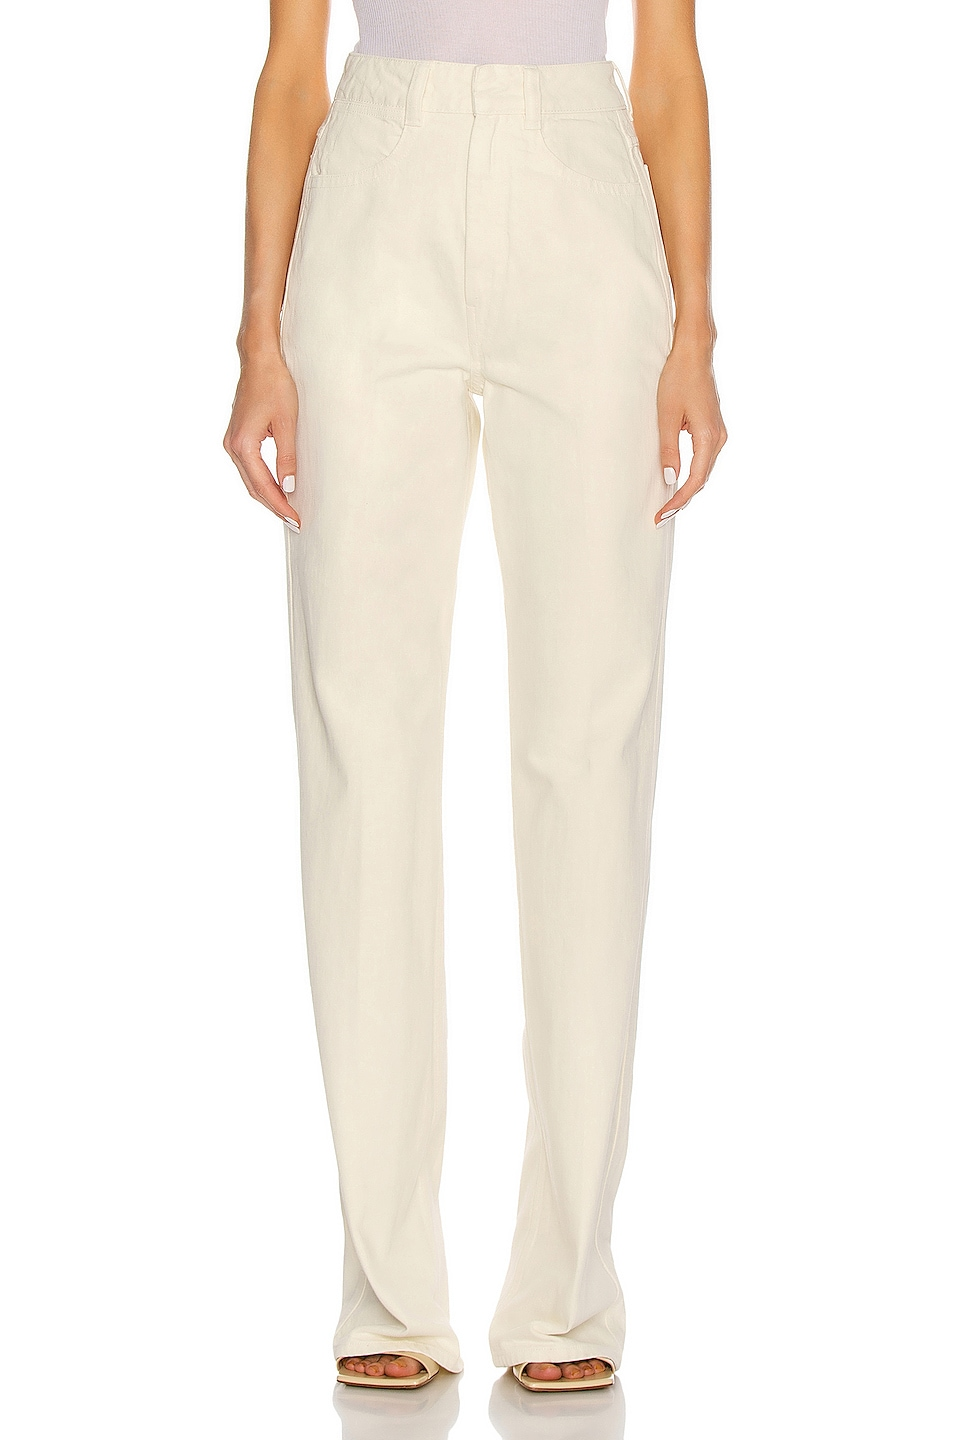 Image 1 of Lemaire Denim High Waisted Pant in Bone White